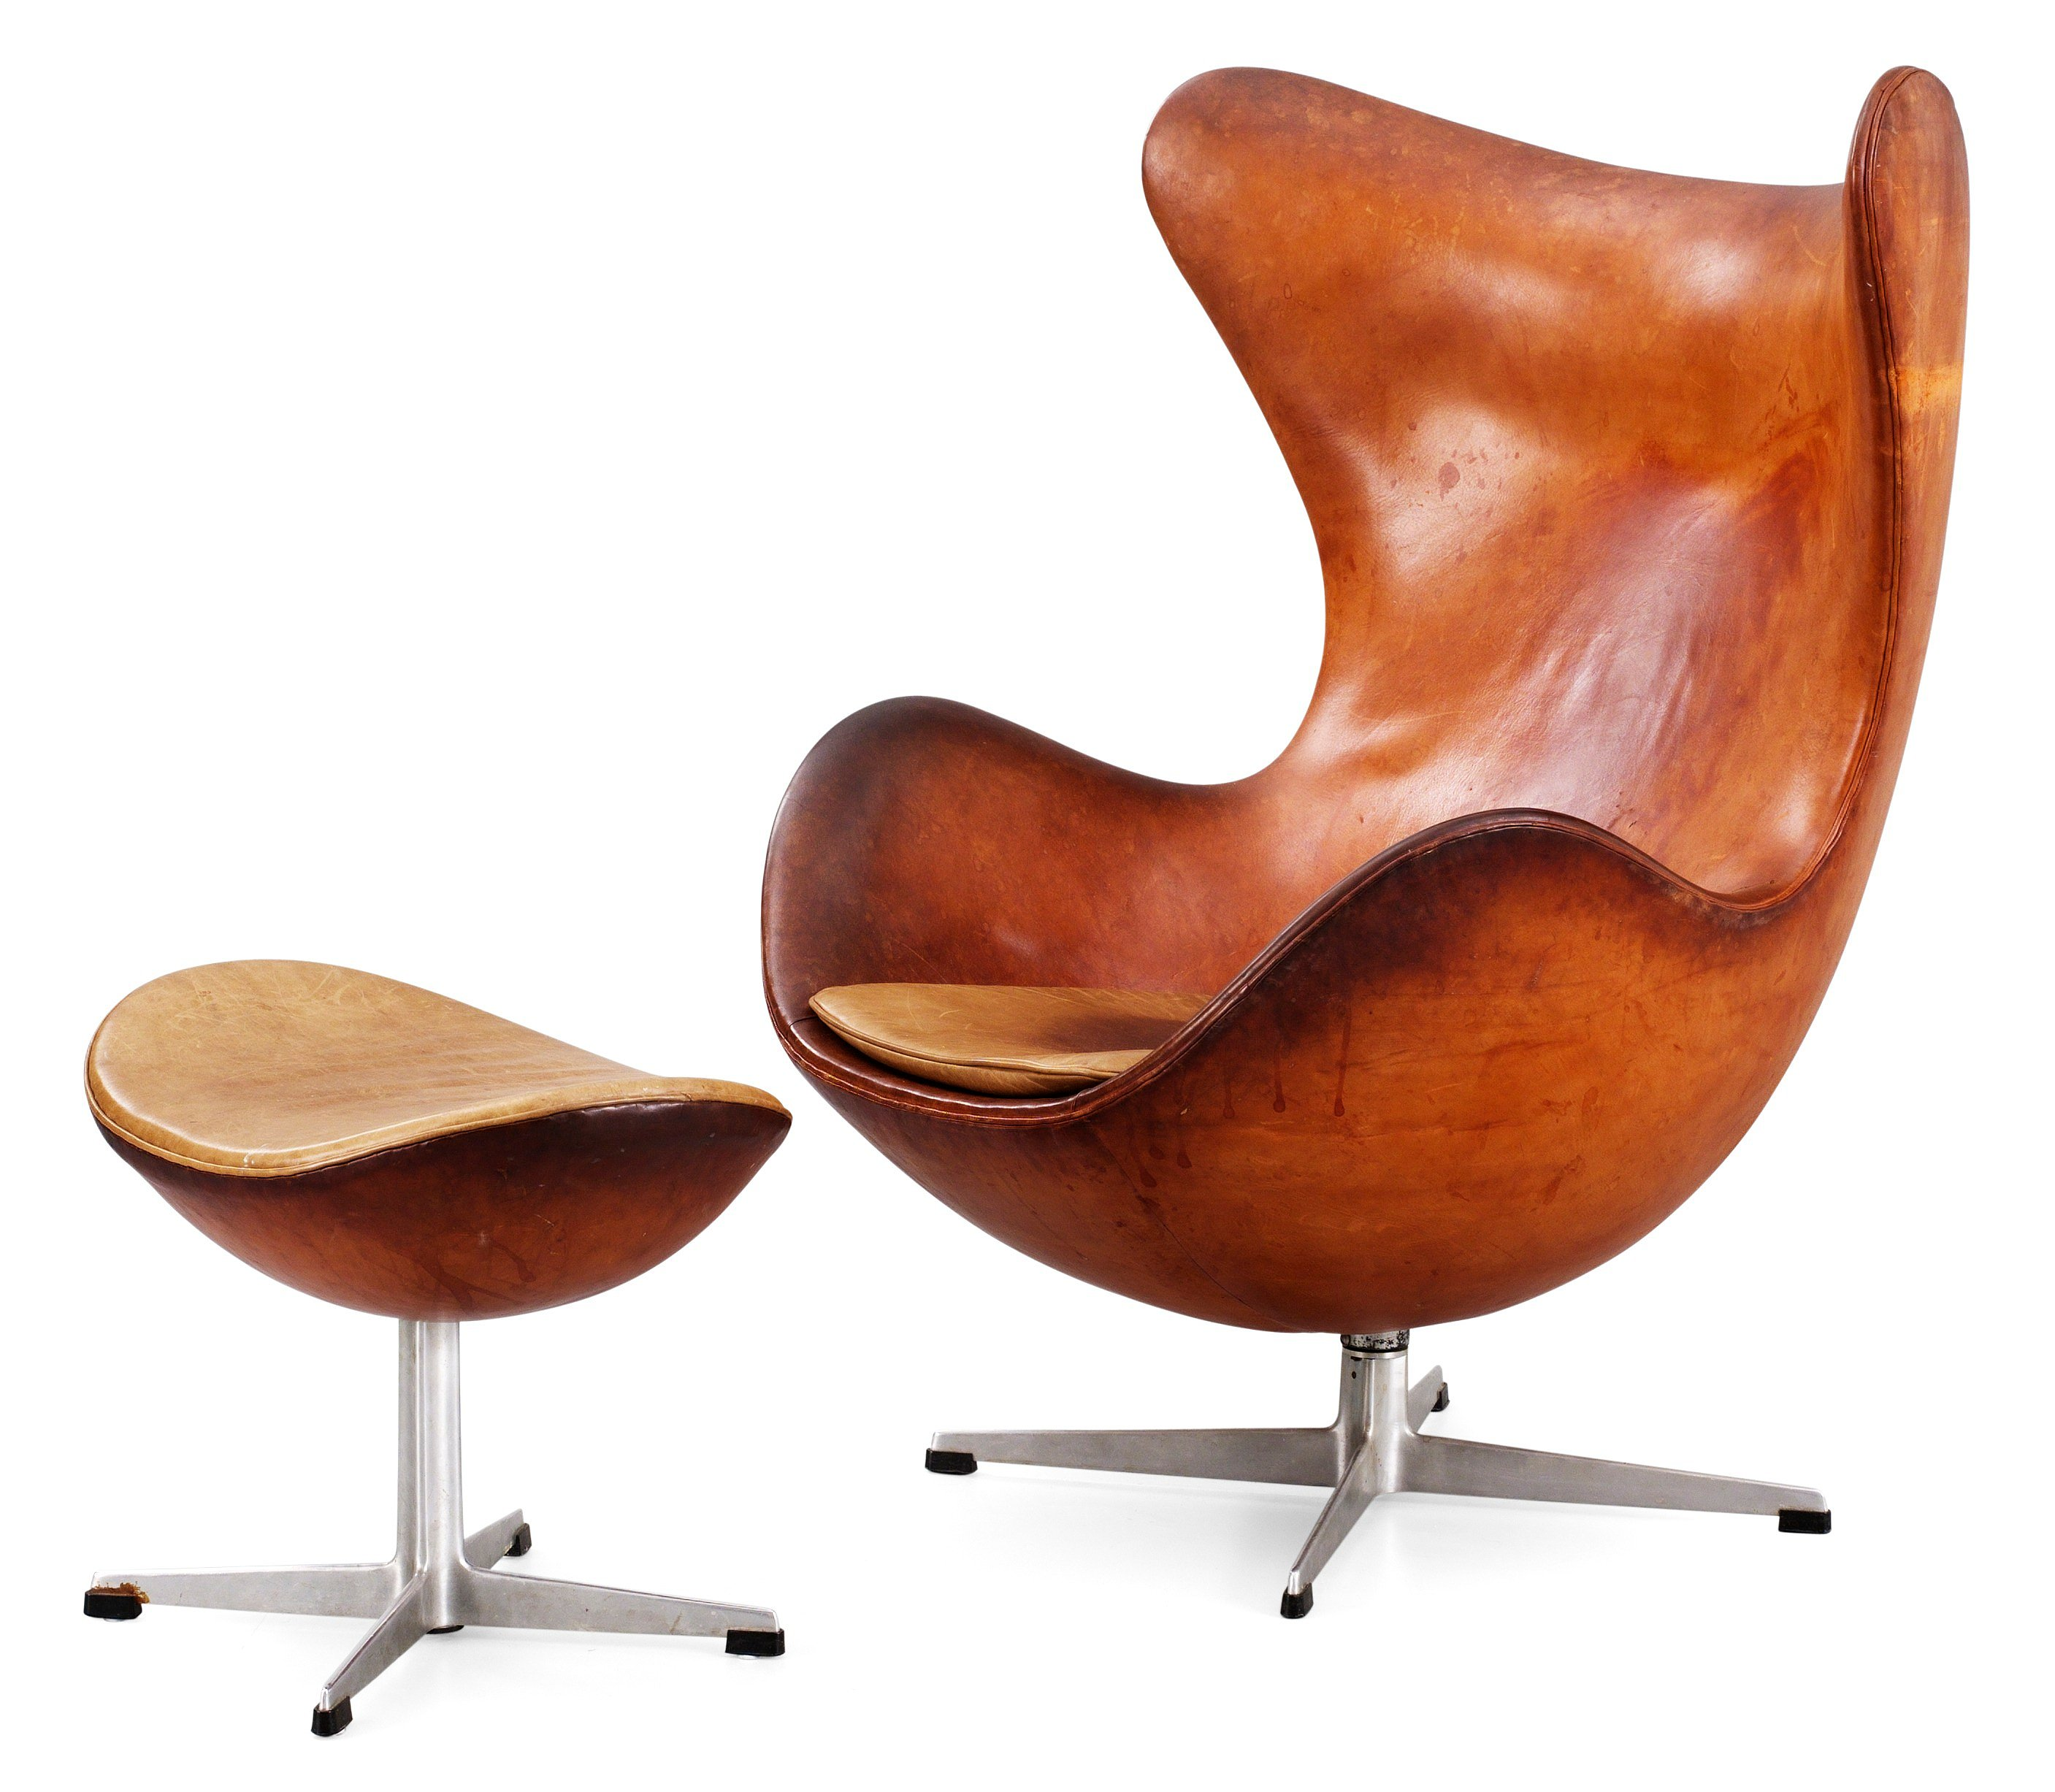 Arne Jacobsen Egg Chair An Arne Jacobsen Brown Leather Egg Chair With Ottoman By Fritz